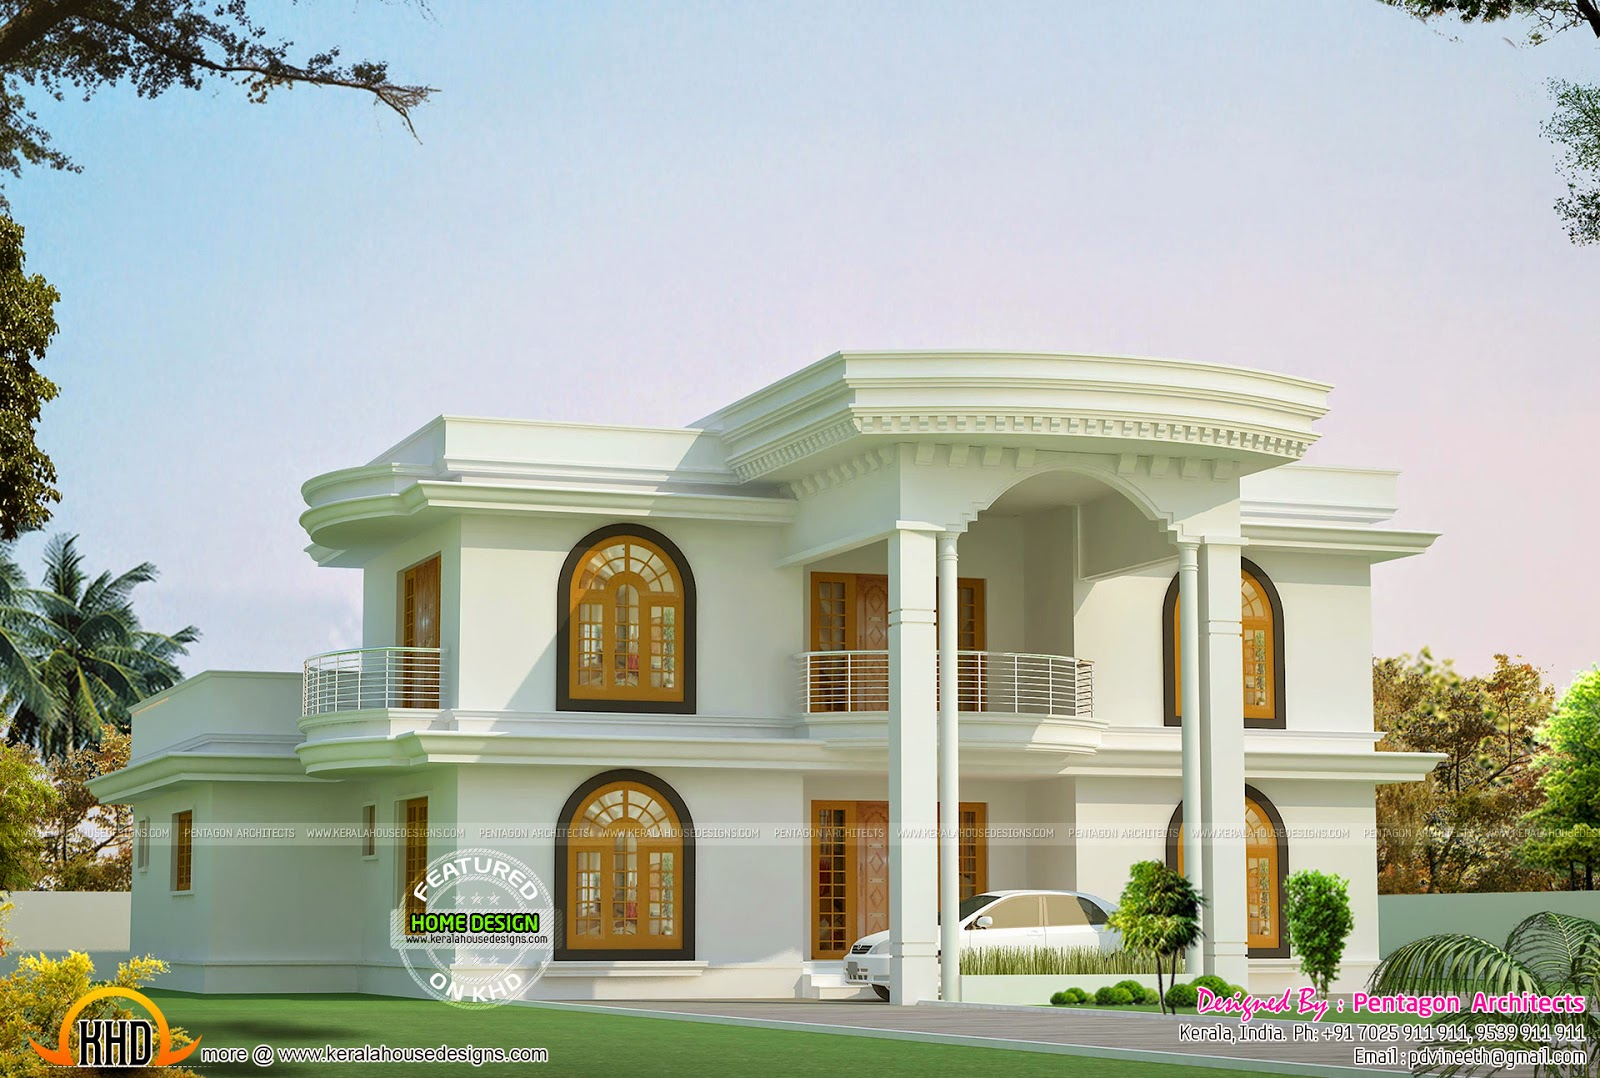 Kerala house plans set part 2 kerala home design and floor plans - Home design and plans ...